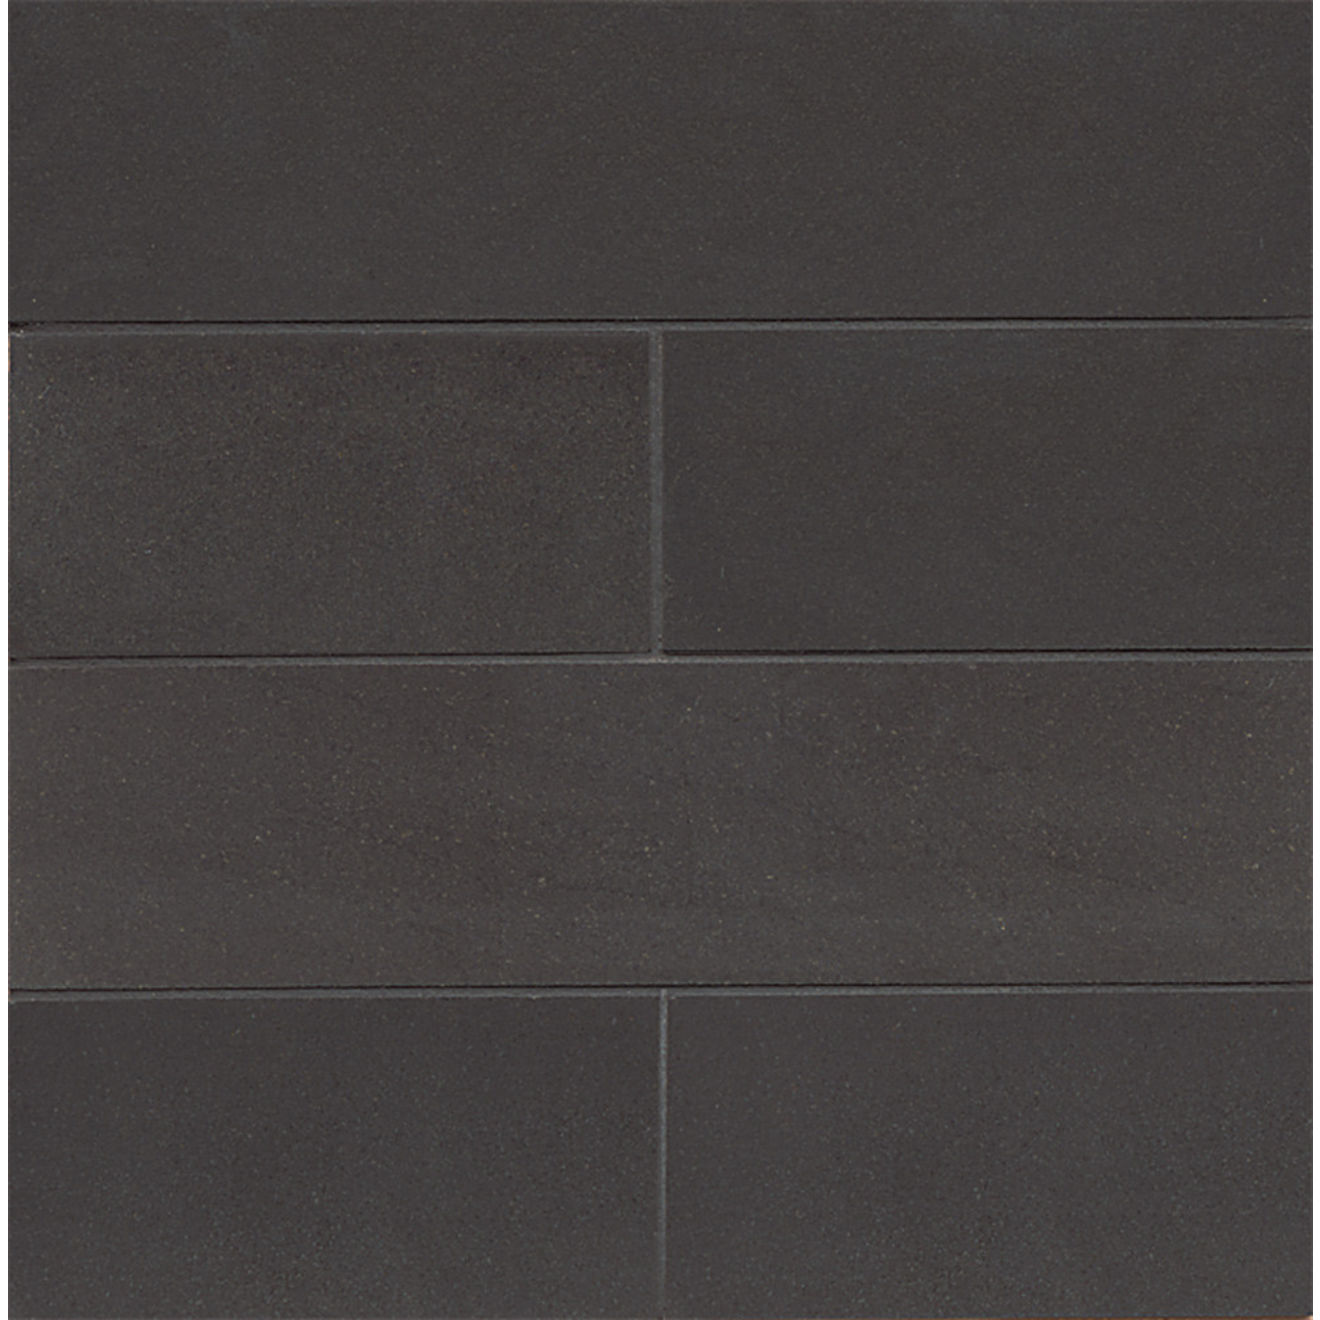 Absolute Black 3.00 x 12.00 Floor & Wall Tile